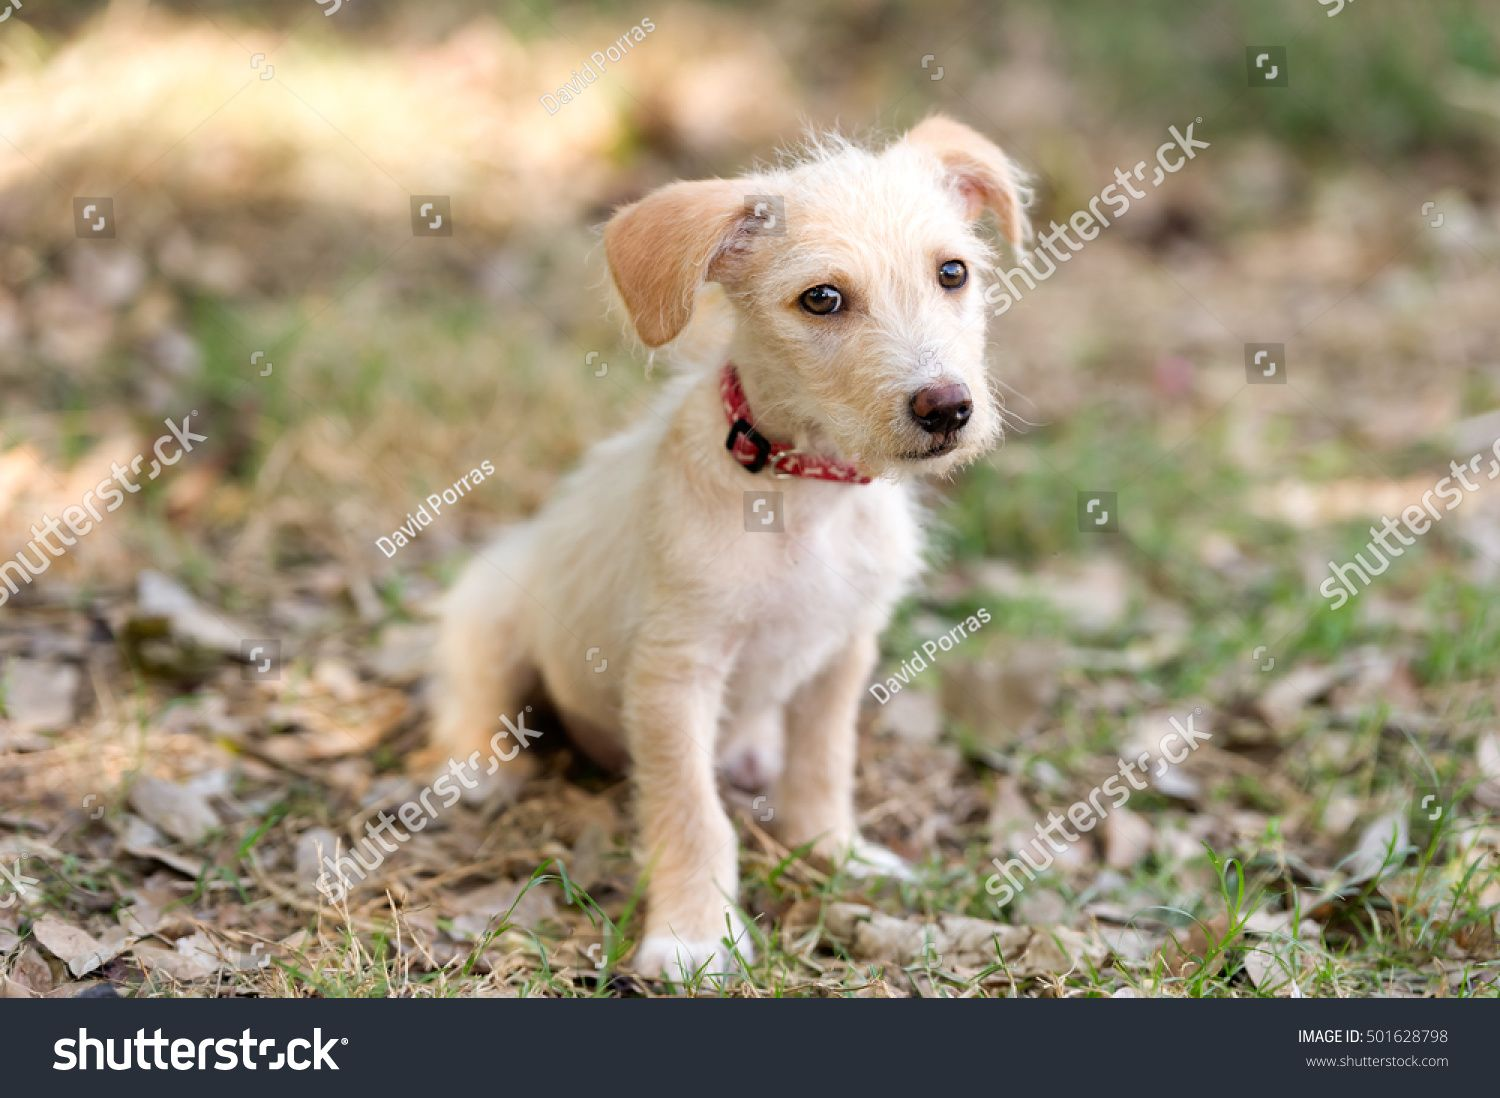 Puppy Dog Cute Adorable Puppy Dog Stock Photo Edit Now Super Dog